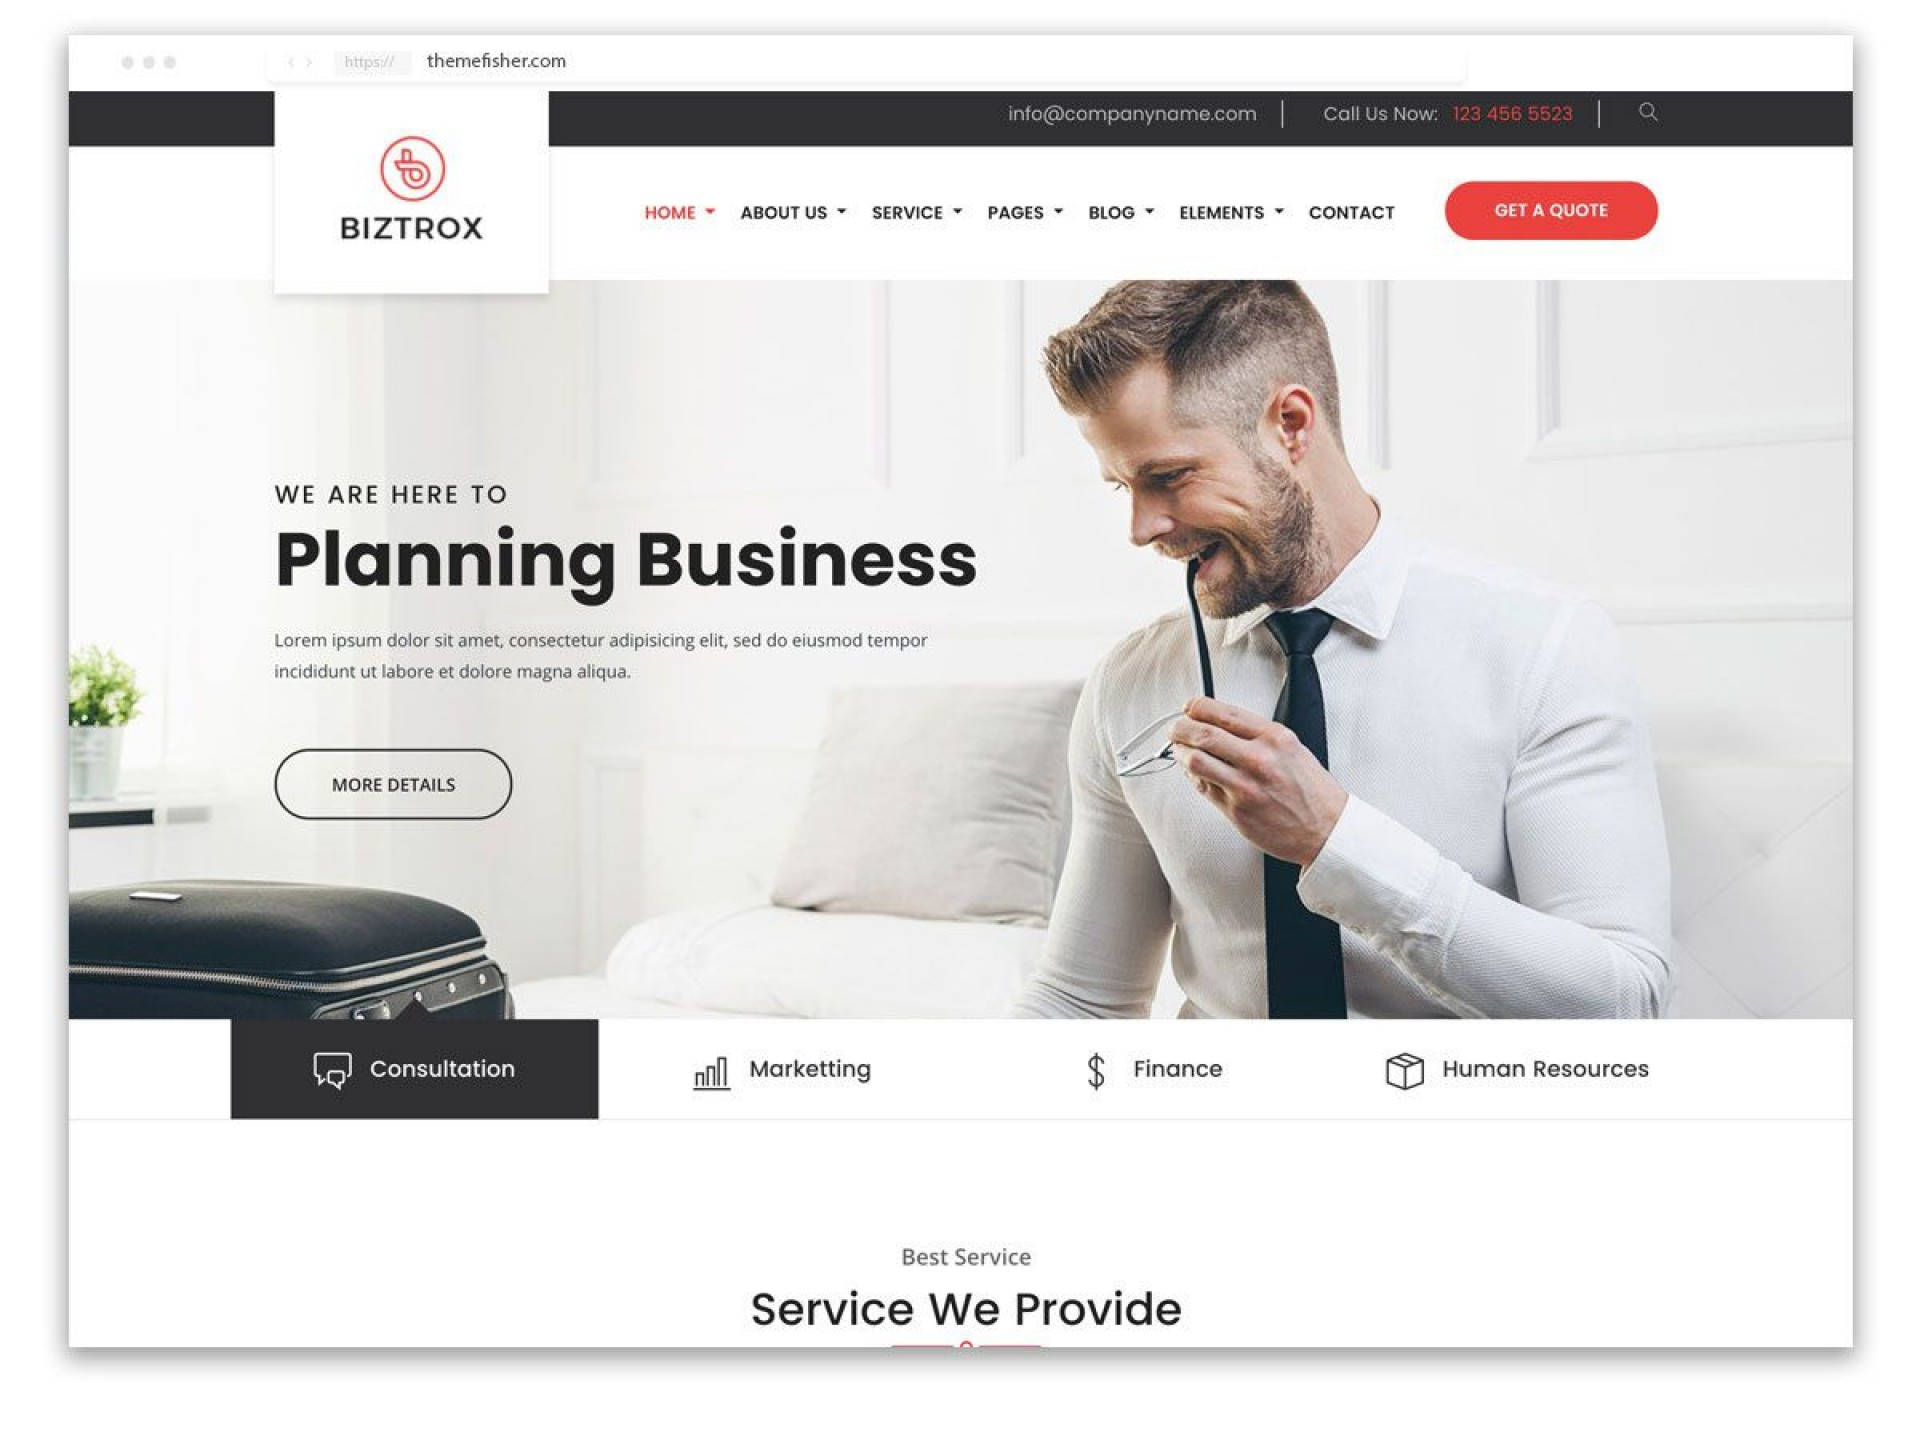 001 Impressive Free Busines Website Template Highest Quality  Templates Wordpres For Small Dreamweaver Download Html5 With Css3 Jquery1920